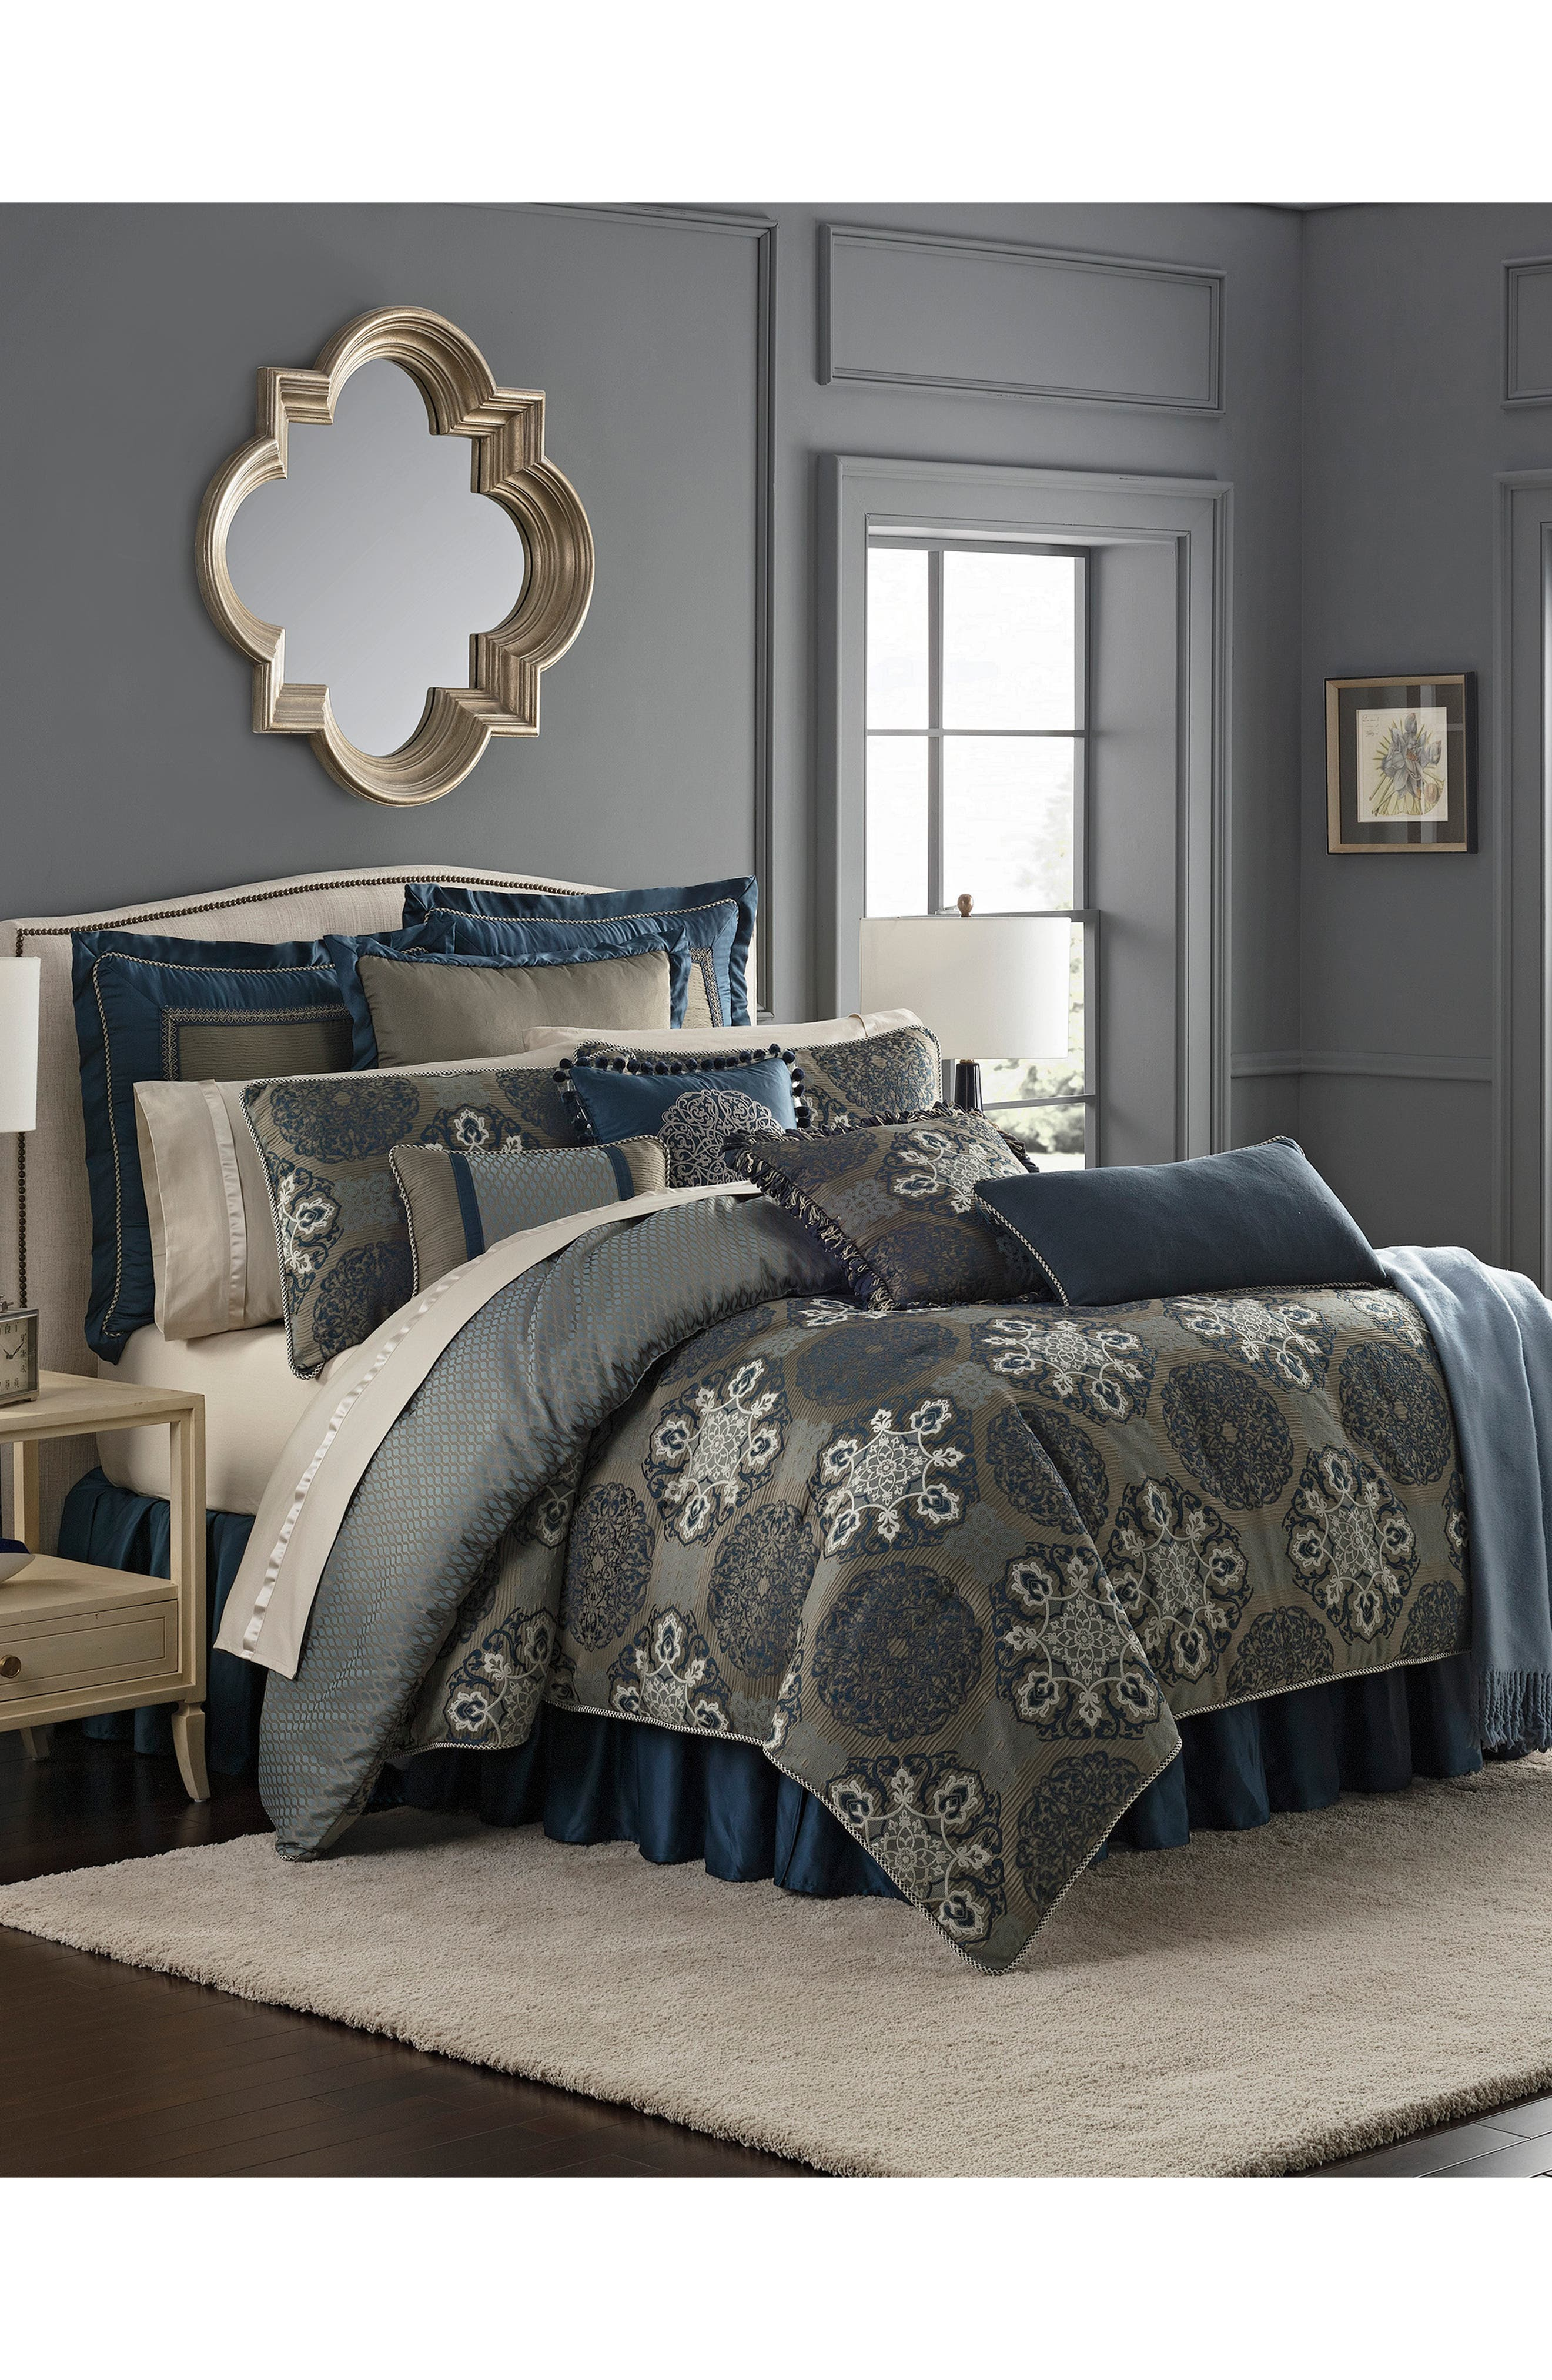 Jonet Reversible Comforter, Sham & Bedskirt Set,                             Alternate thumbnail 7, color,                             INDIGO